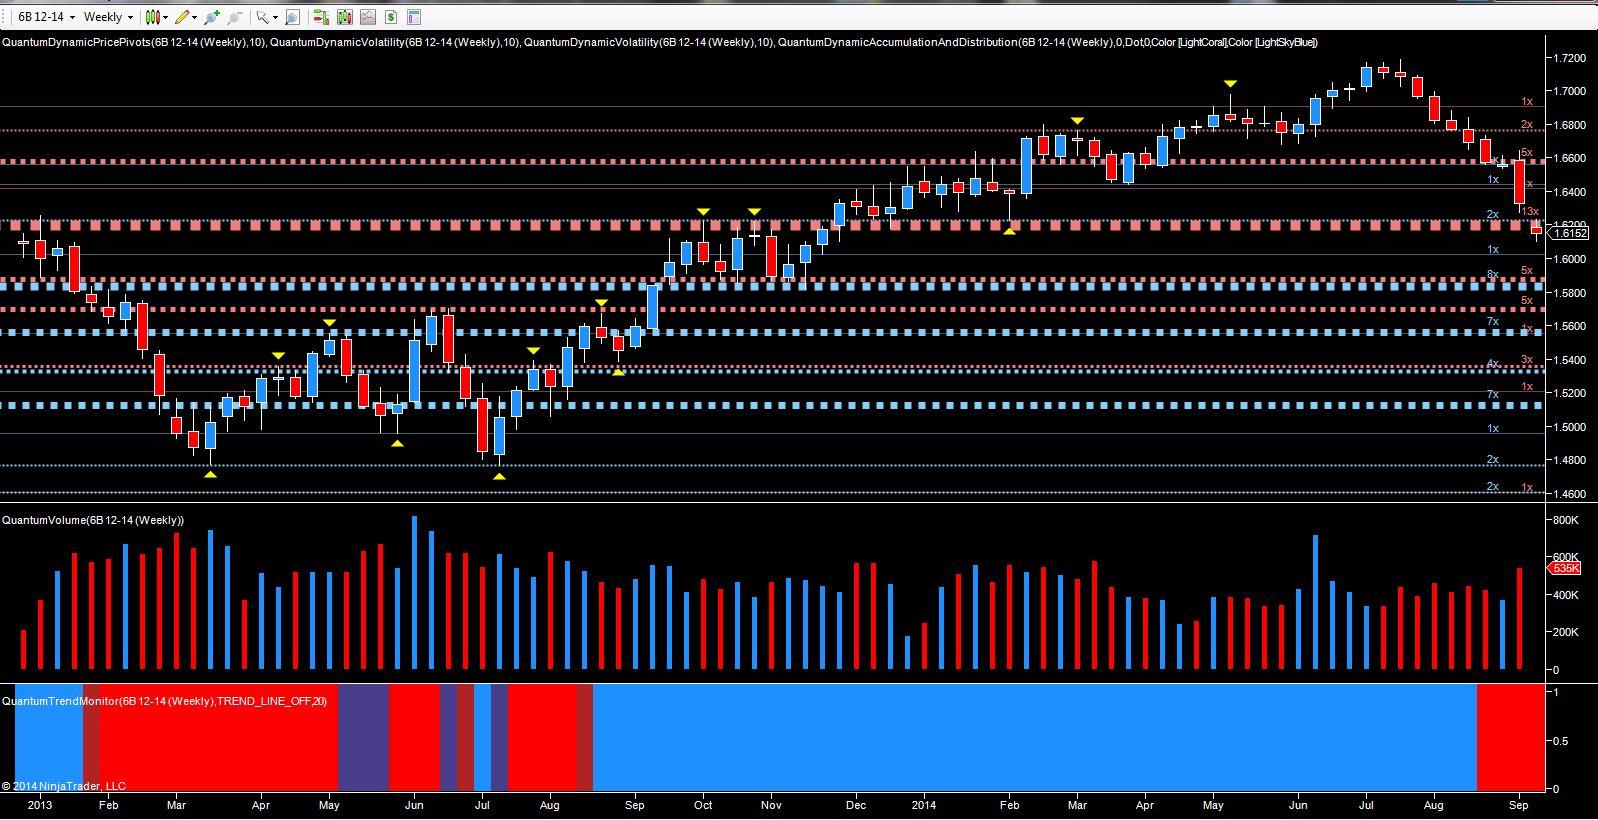 GBP/USD December futures - weekly chart